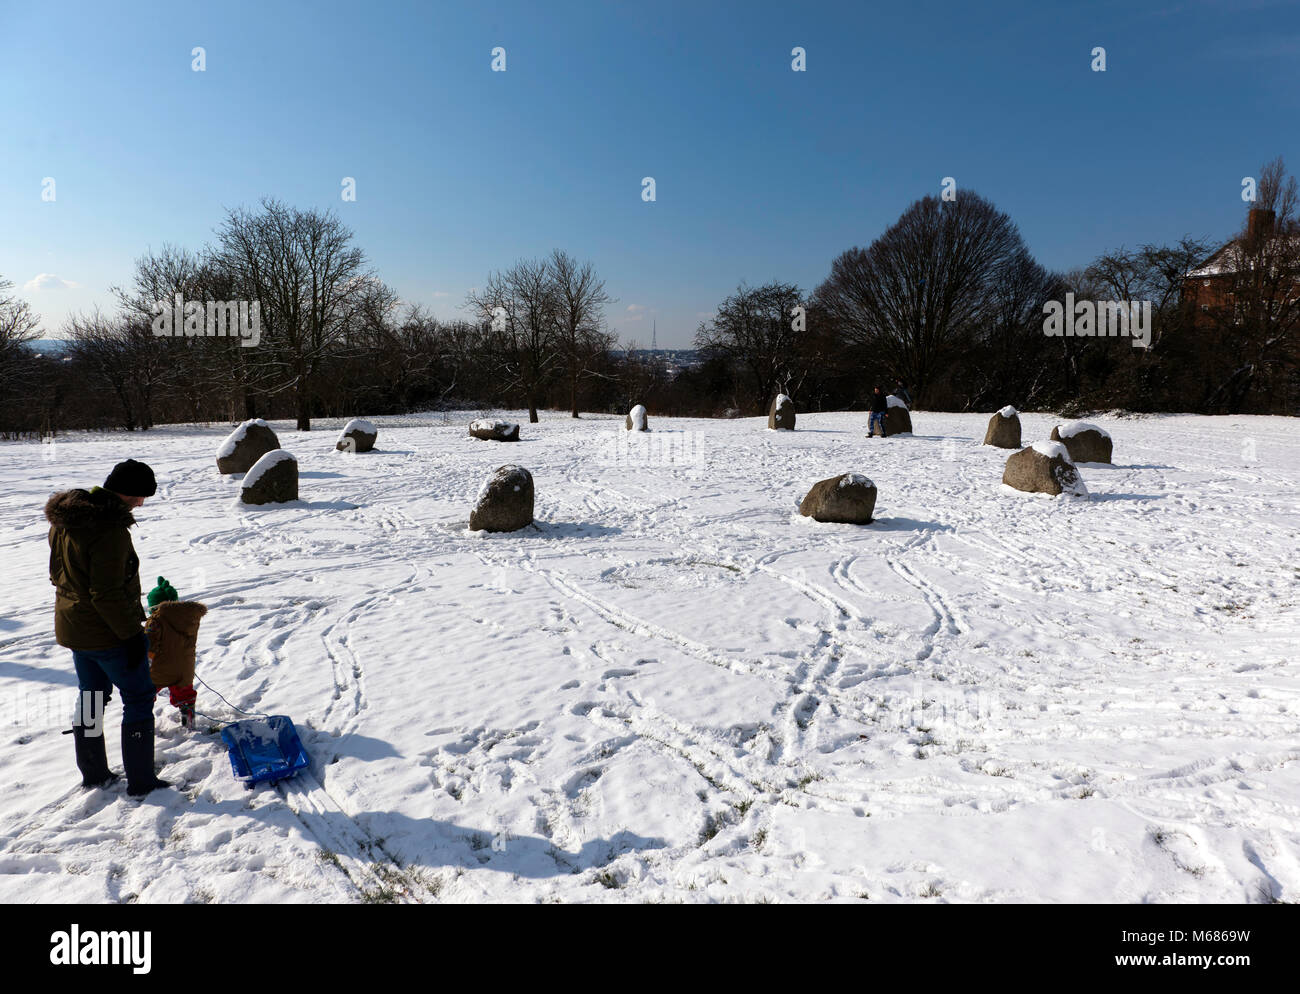 Snow at the Millennium  Stone Circle, Hilly Fields Park, Lewishjam - Stock Image